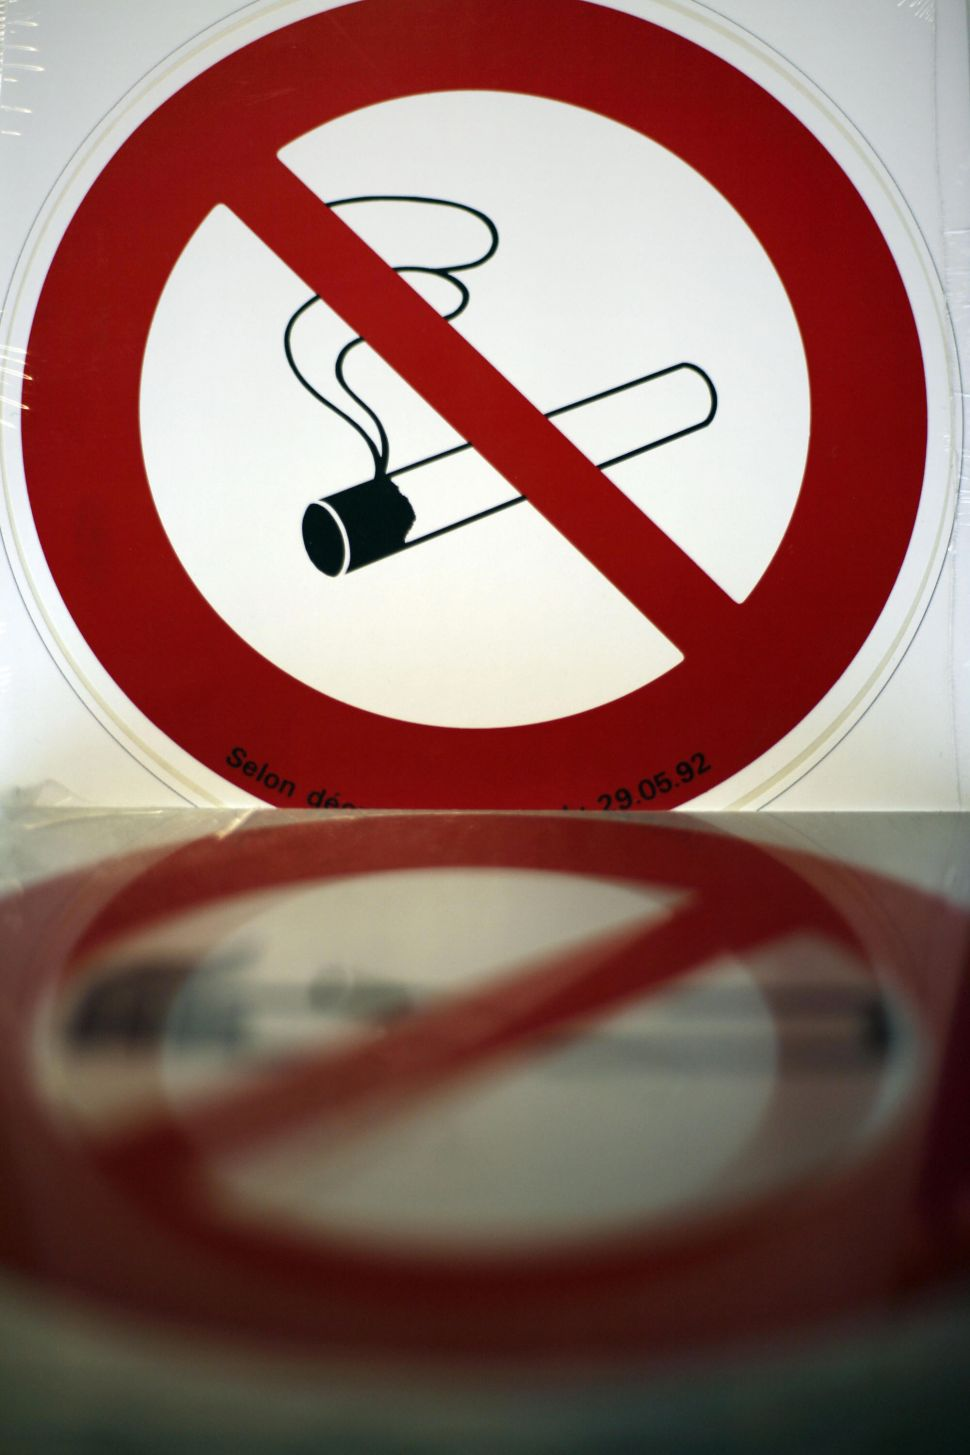 What a Drag: Major Landlord Tells All Smokers to Give Up or Get Out